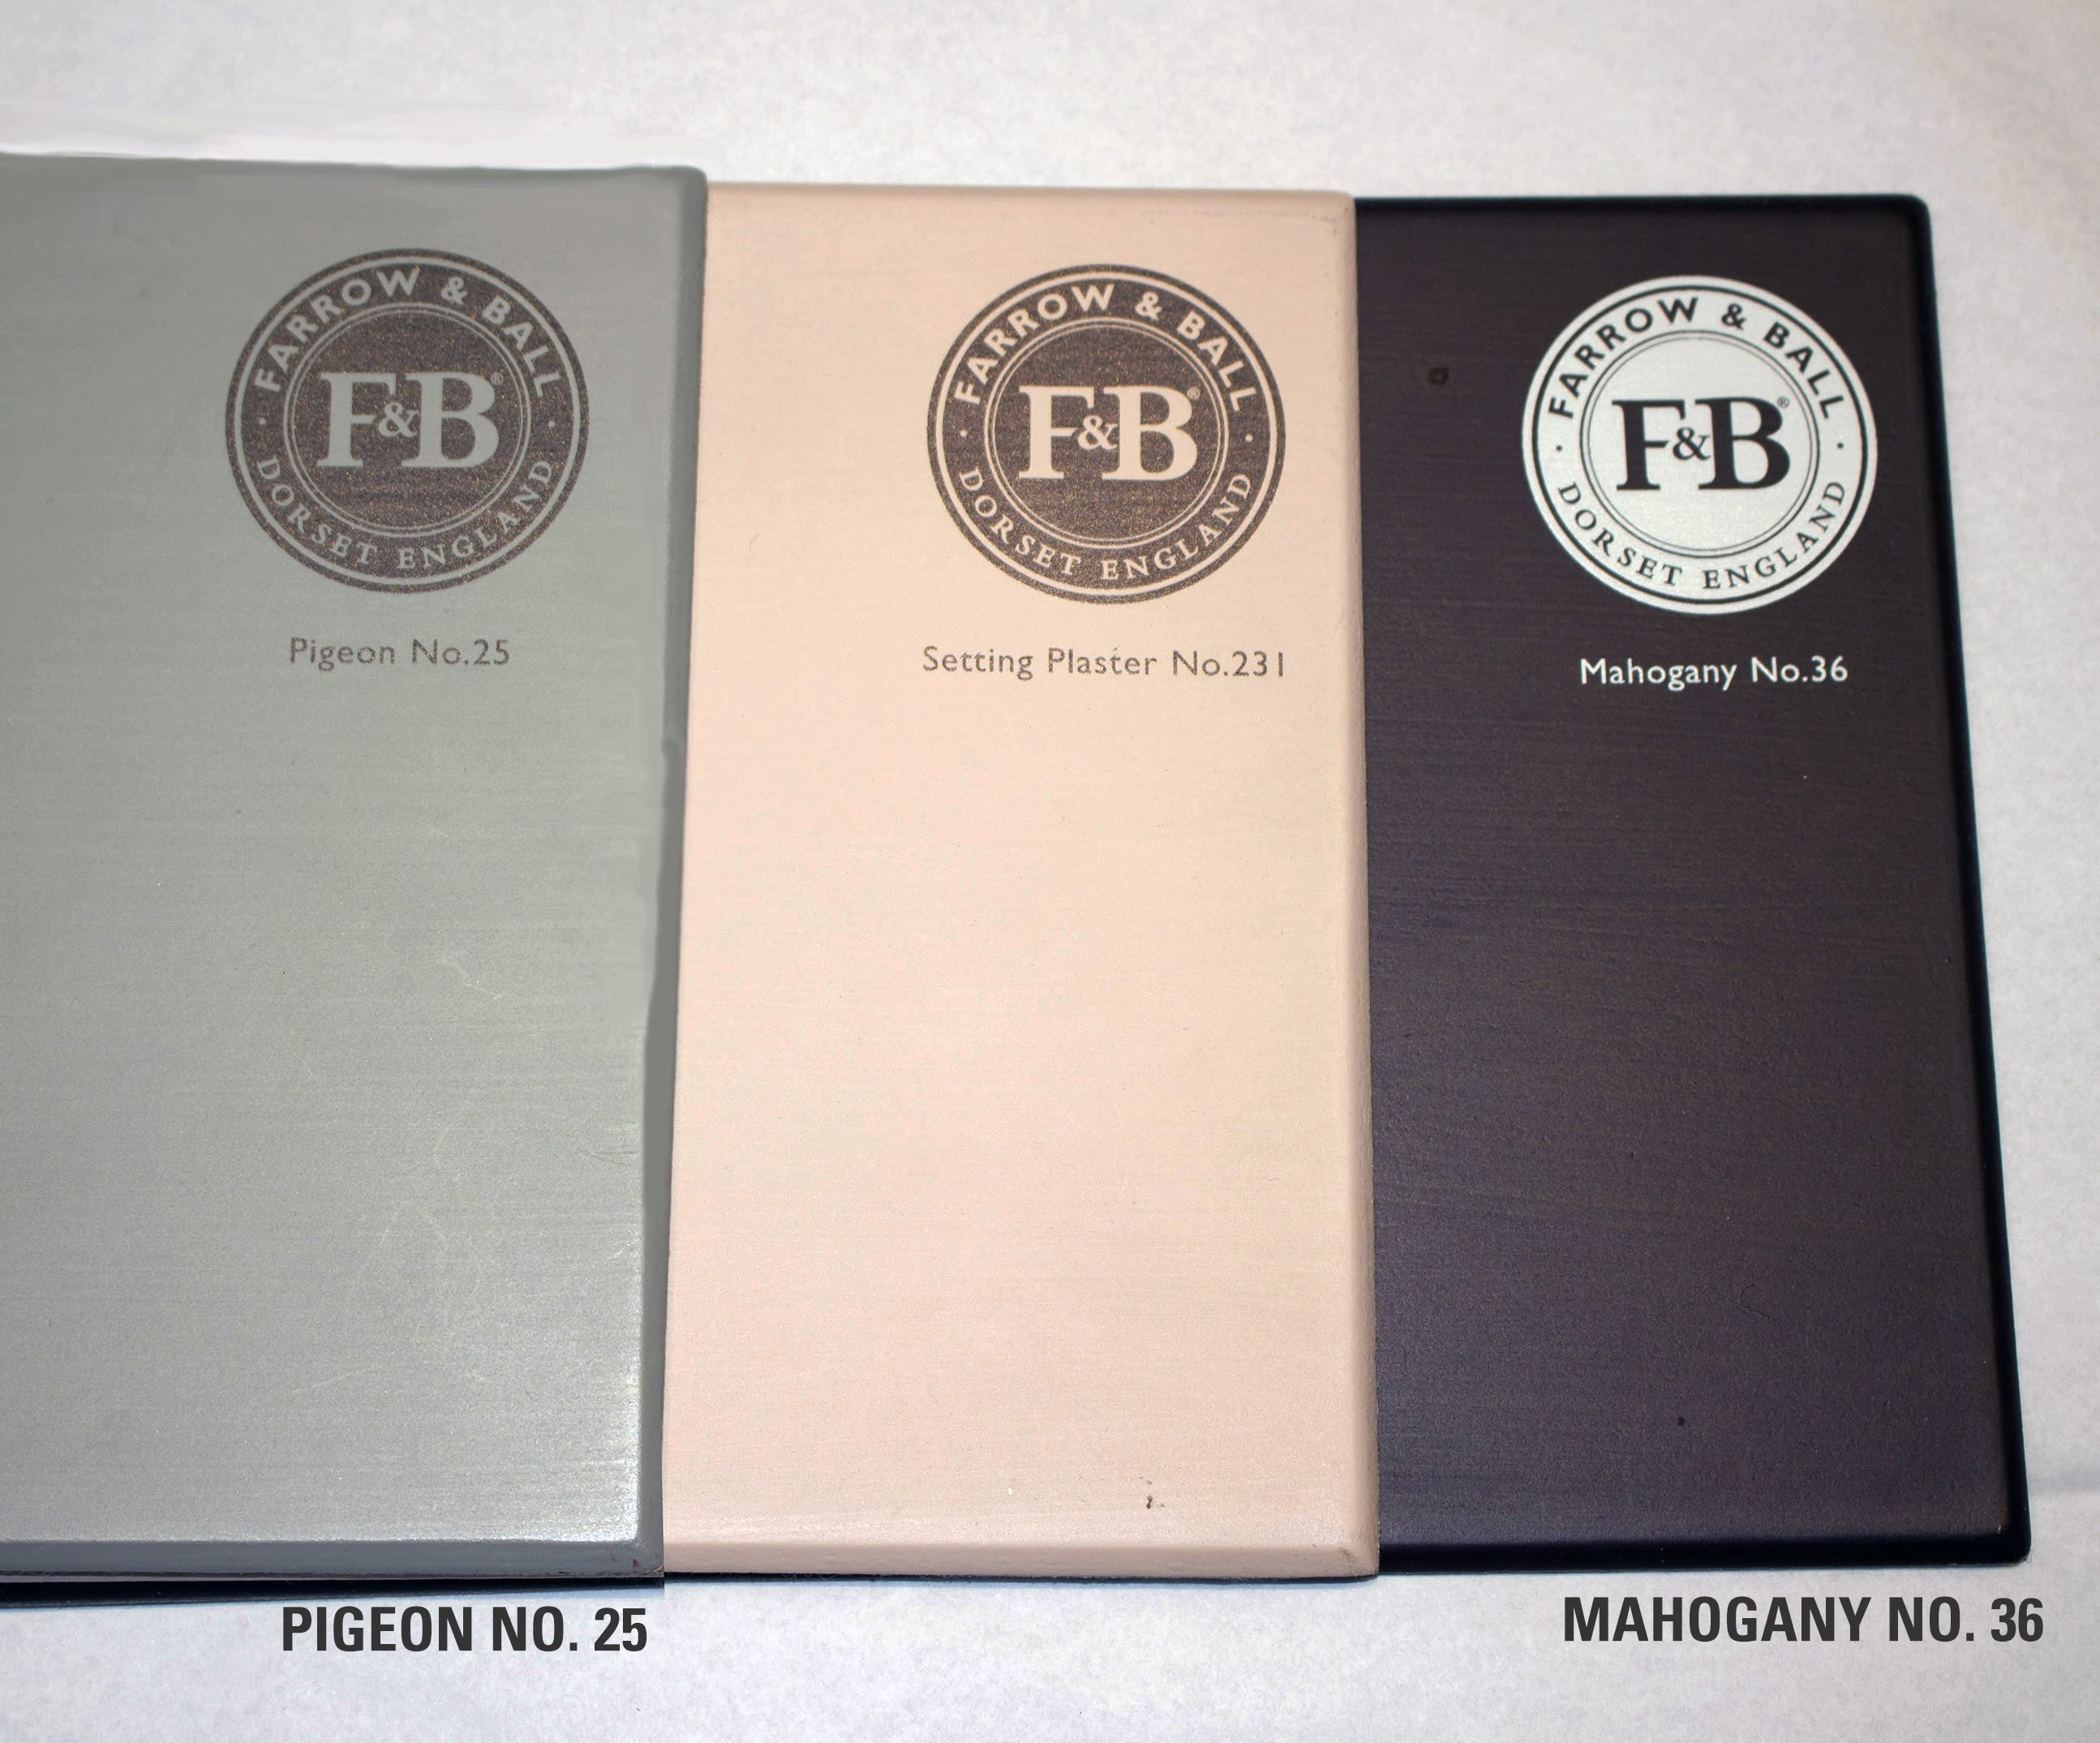 farrow&ball, farrow and ball, paint, decorating, paint brush, setting plaster